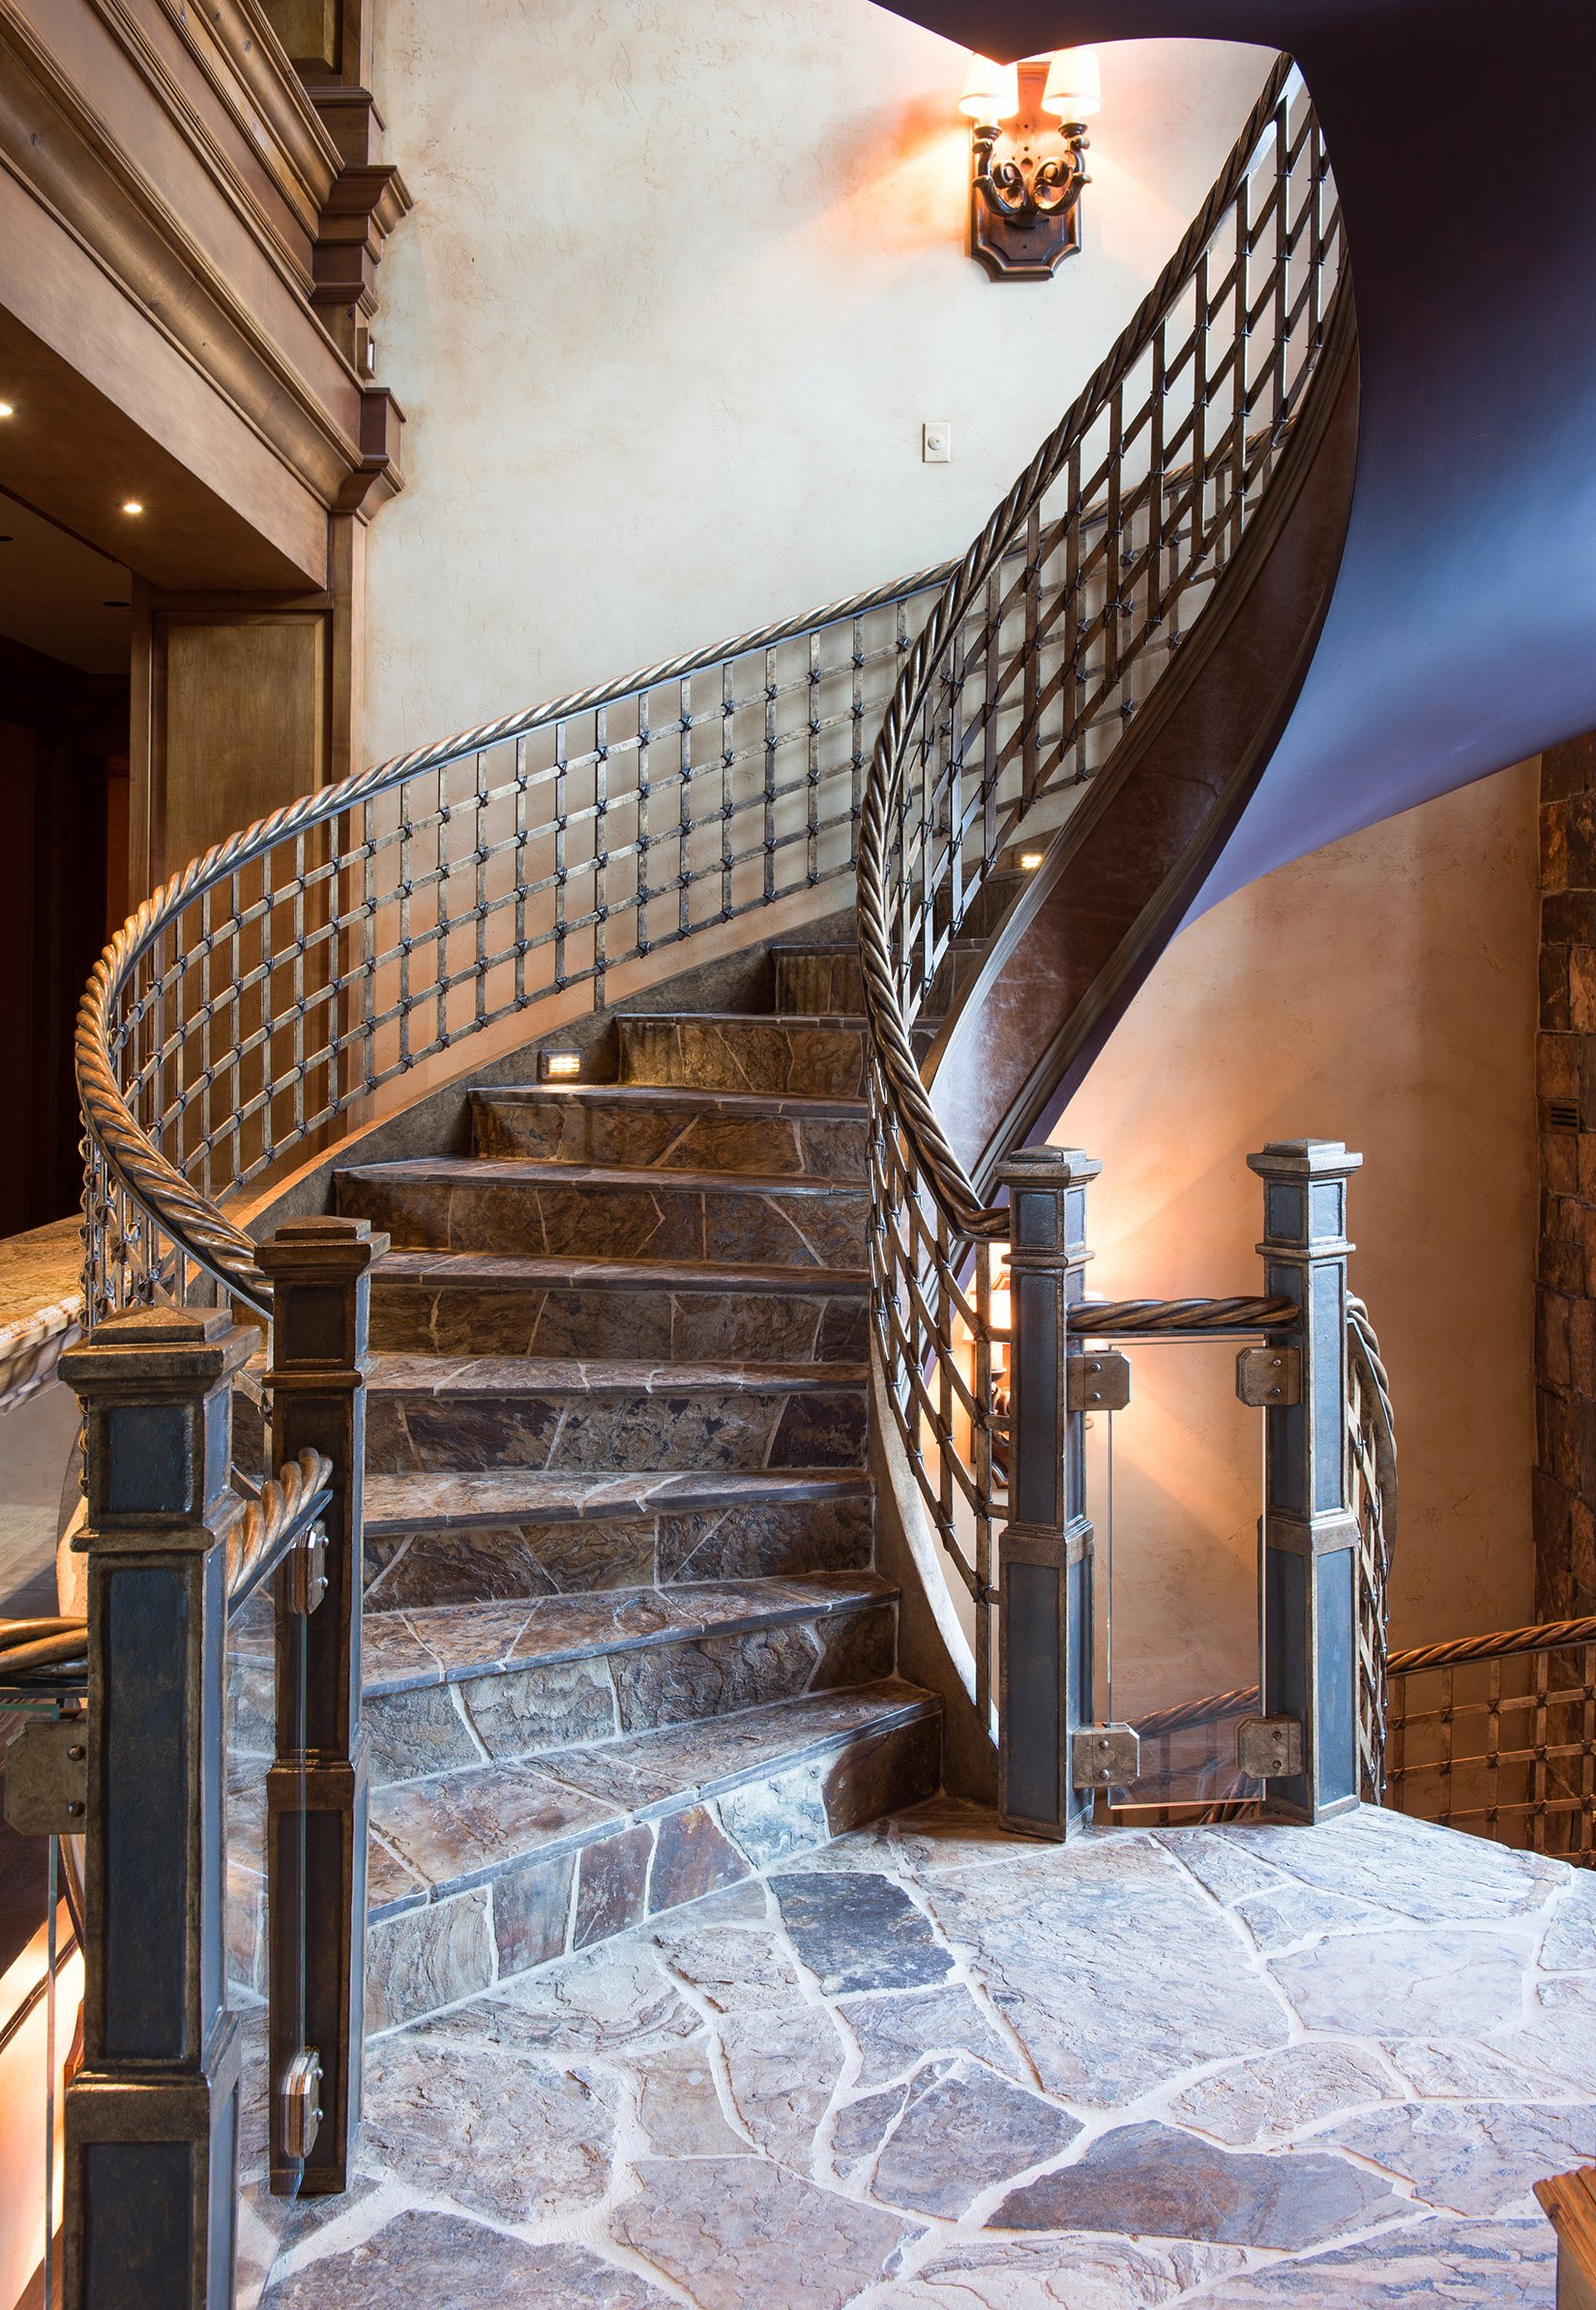 This staircase is a piece of art in itself!!